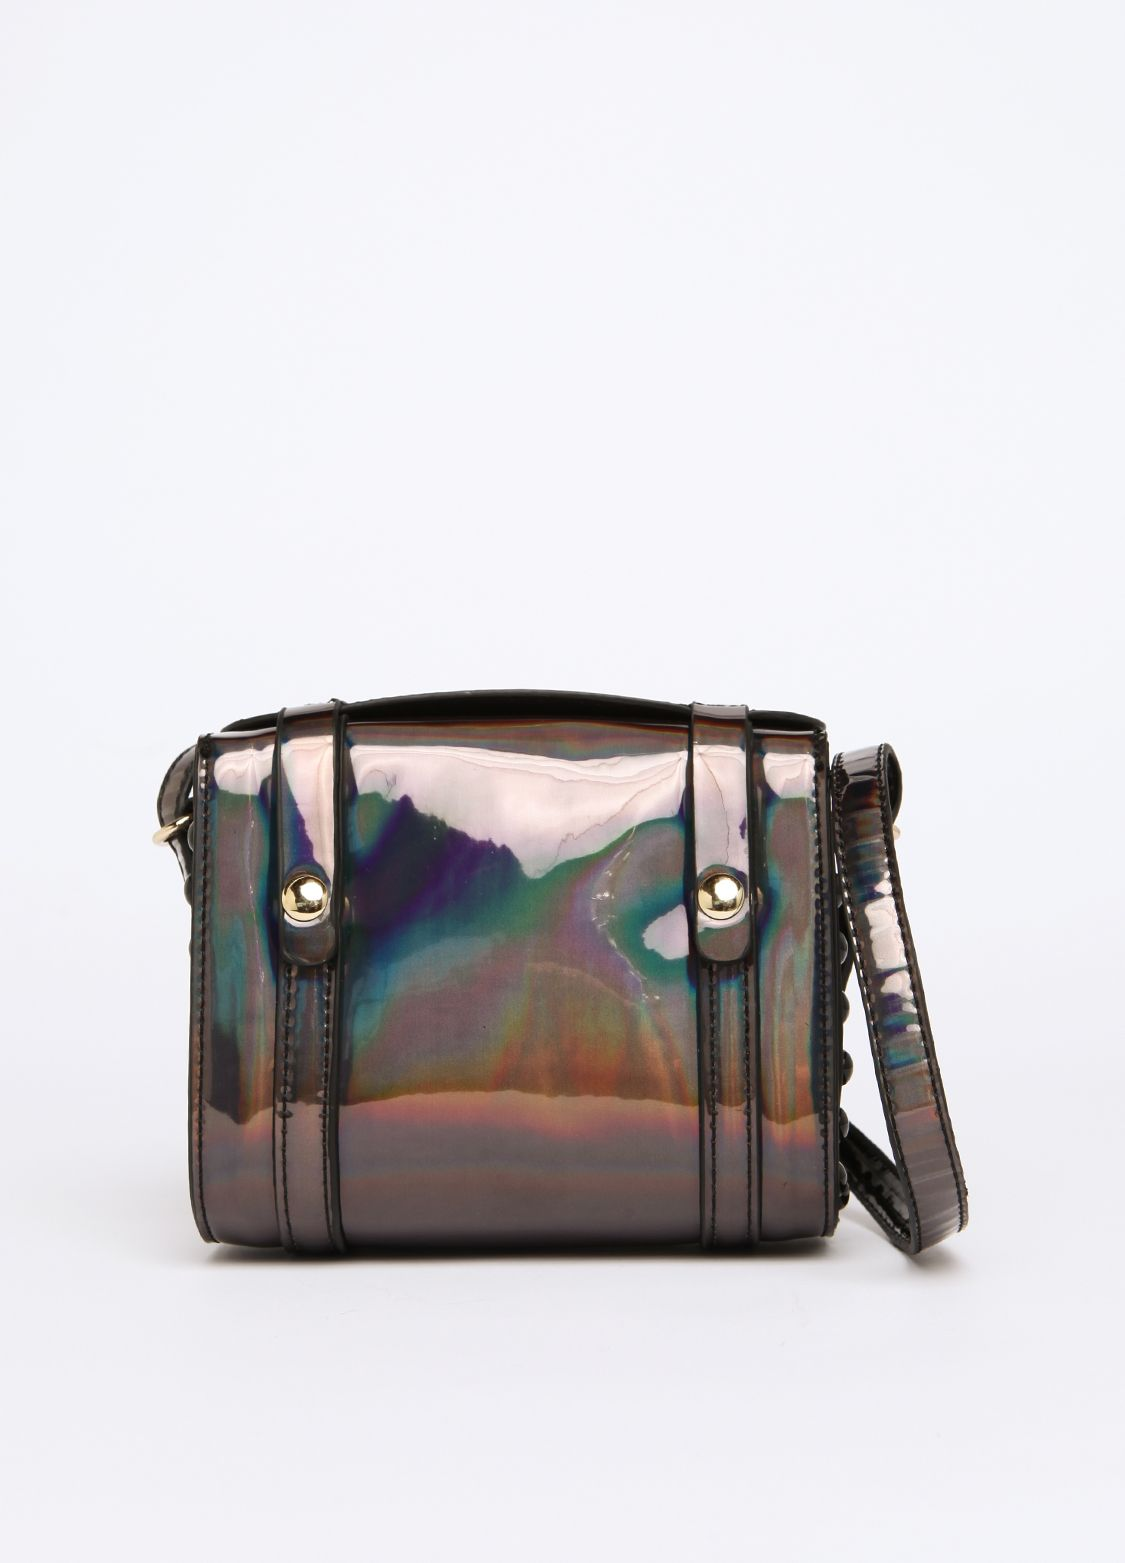 Abyss Purse in holographic material